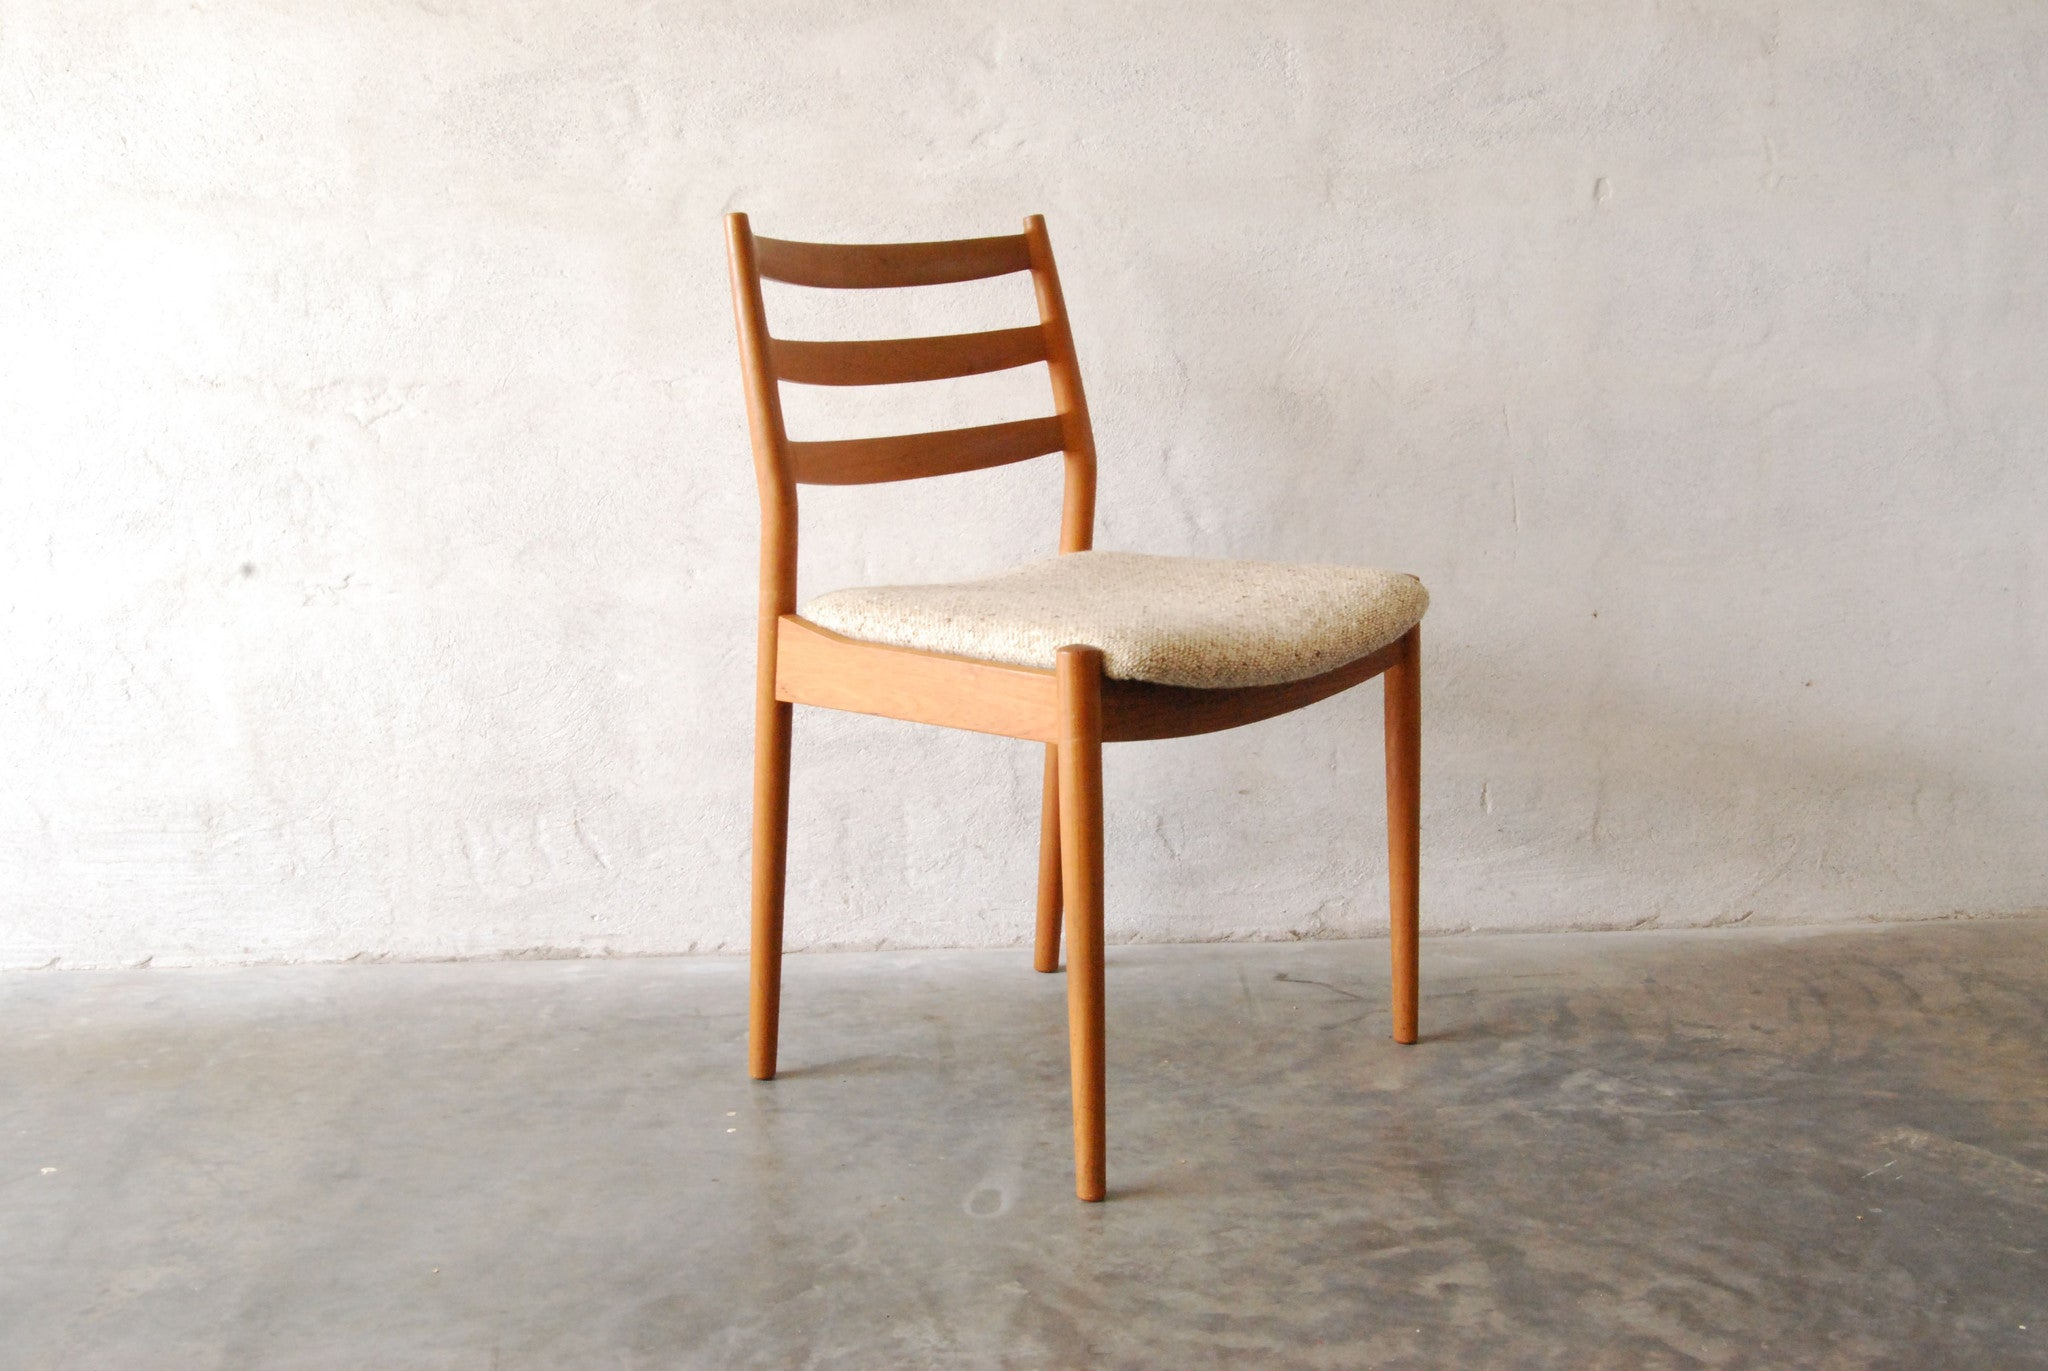 Chase & Sorensen Pair of dining chairs by Arne Vodder for CADO